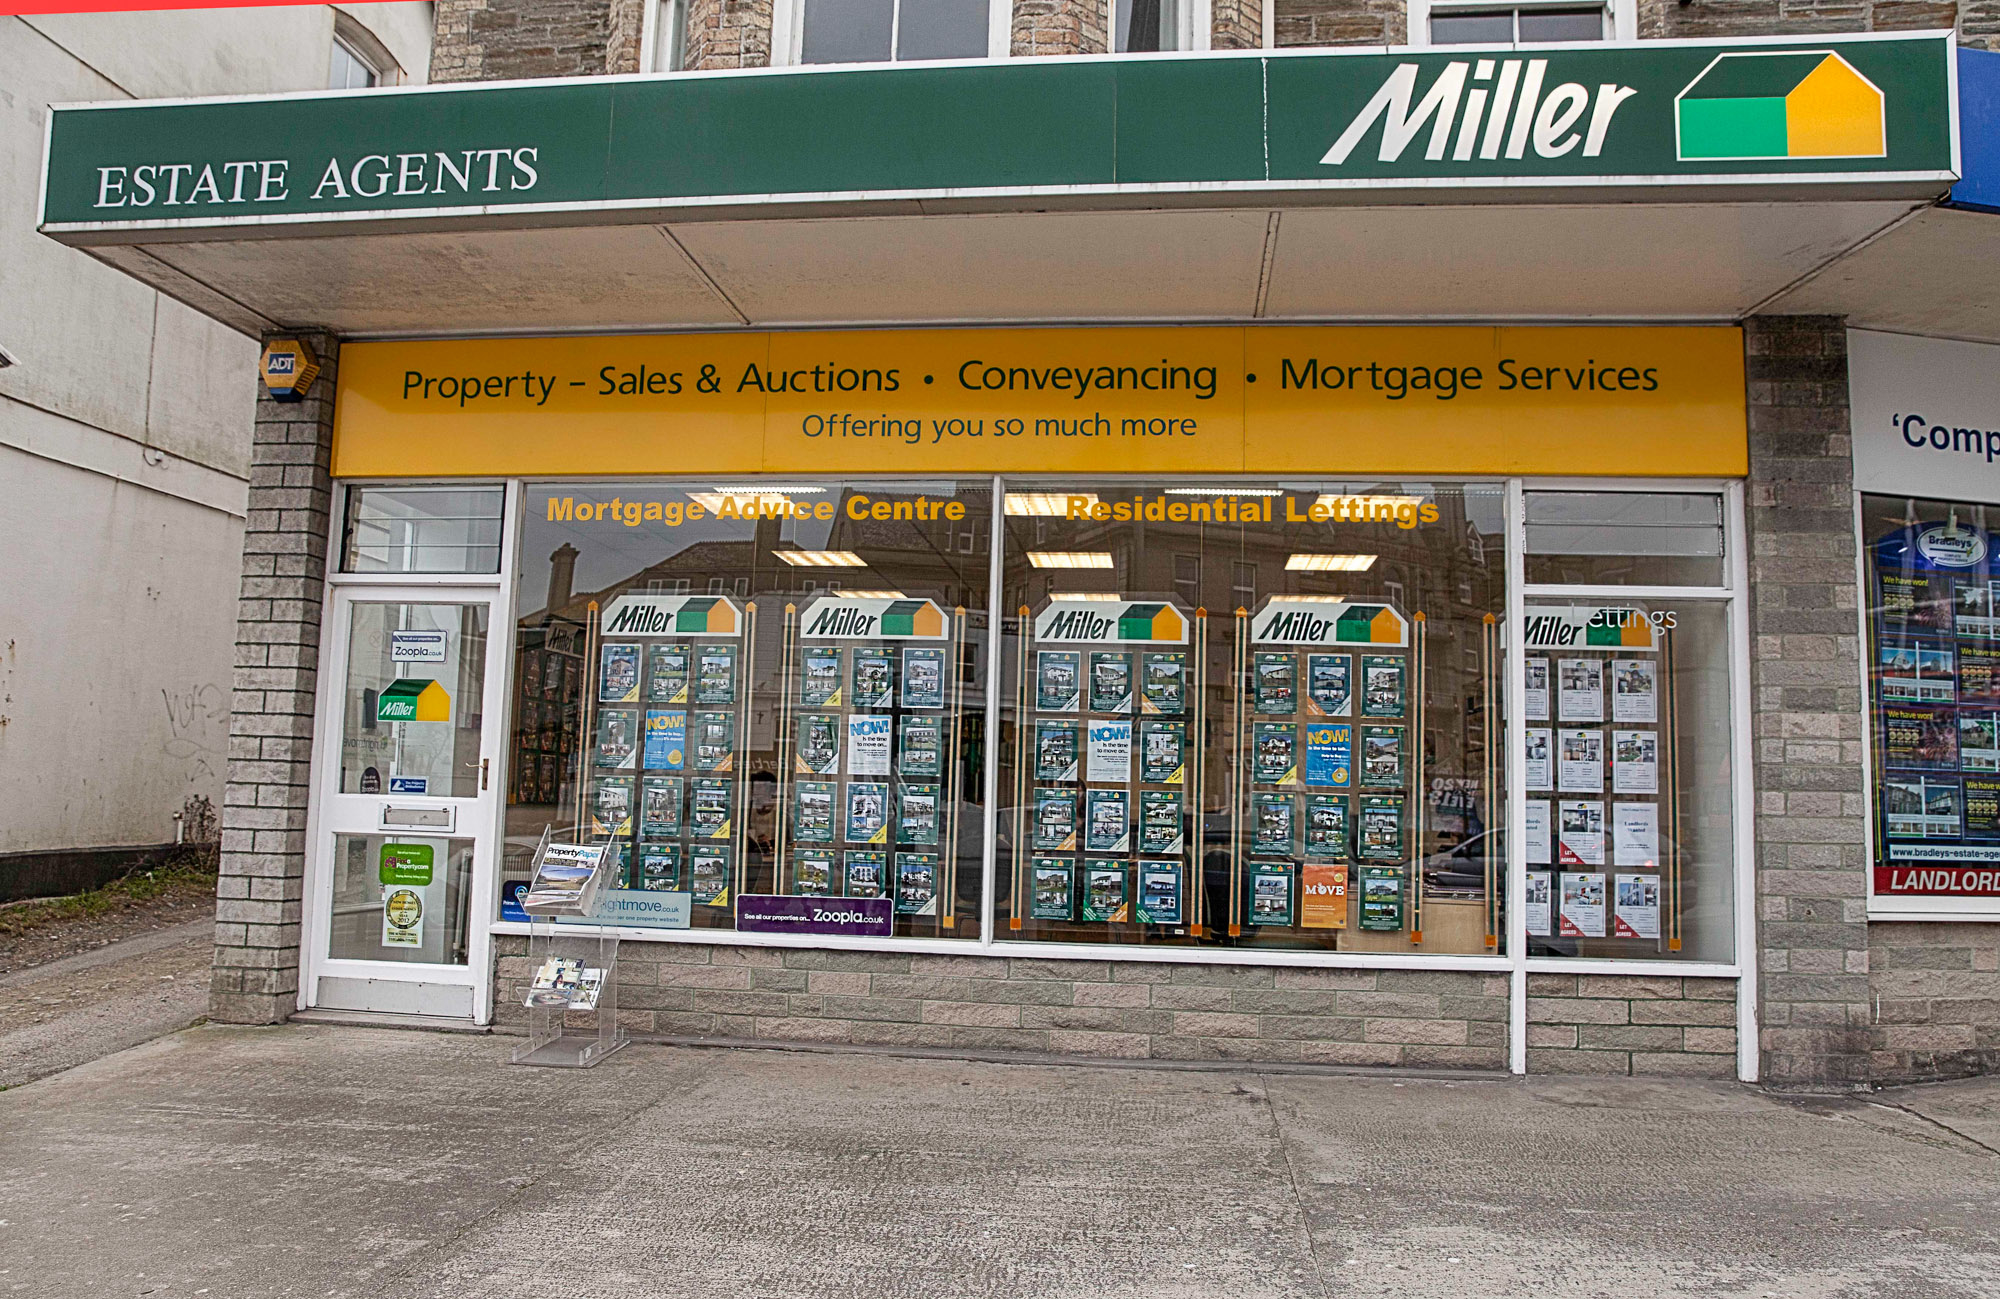 Miller Countrywide Estate Agents Newquay